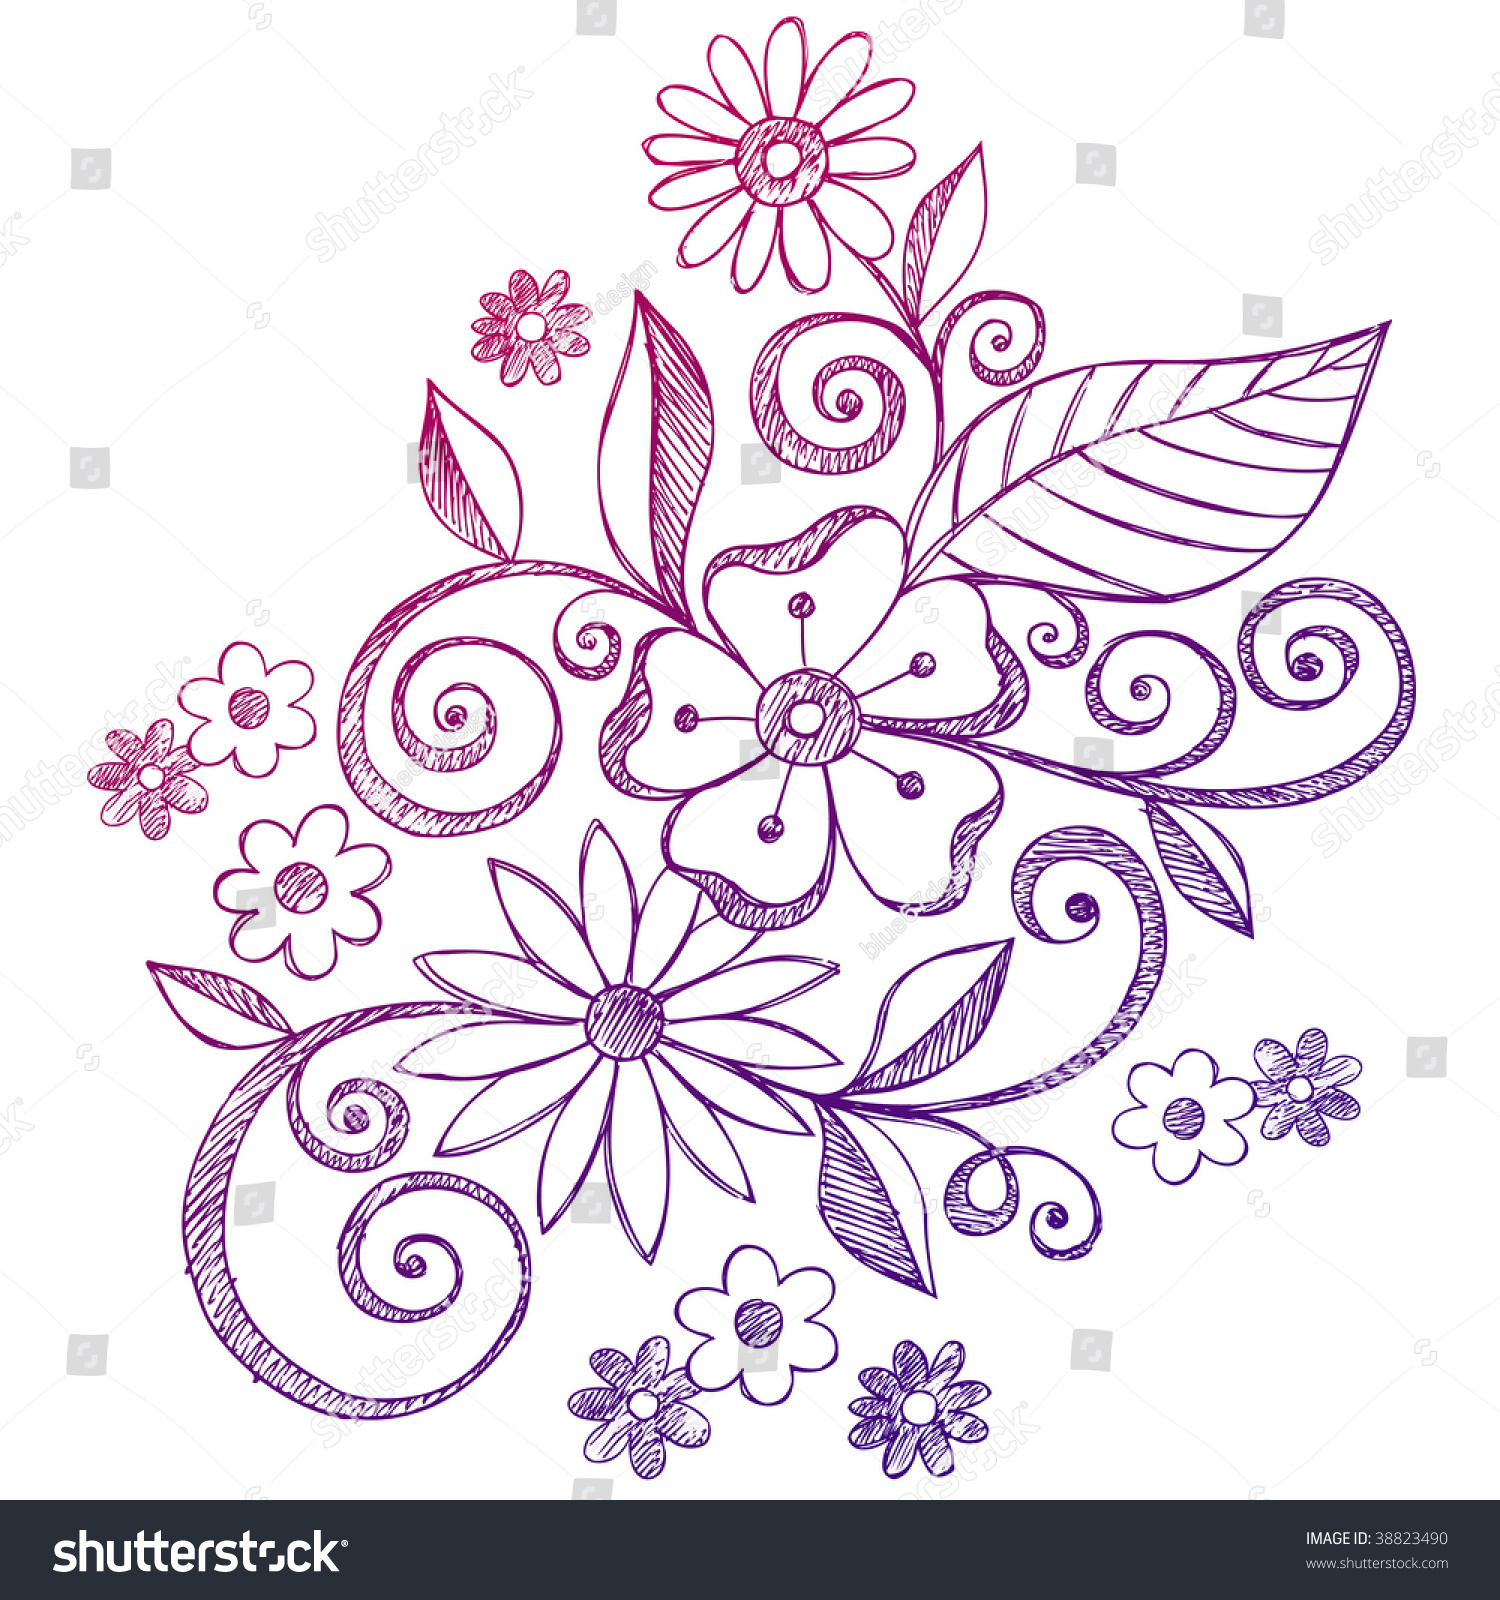 Easy Drawings Of Flowers And Vines Vine Tattoos Designs Ideas And